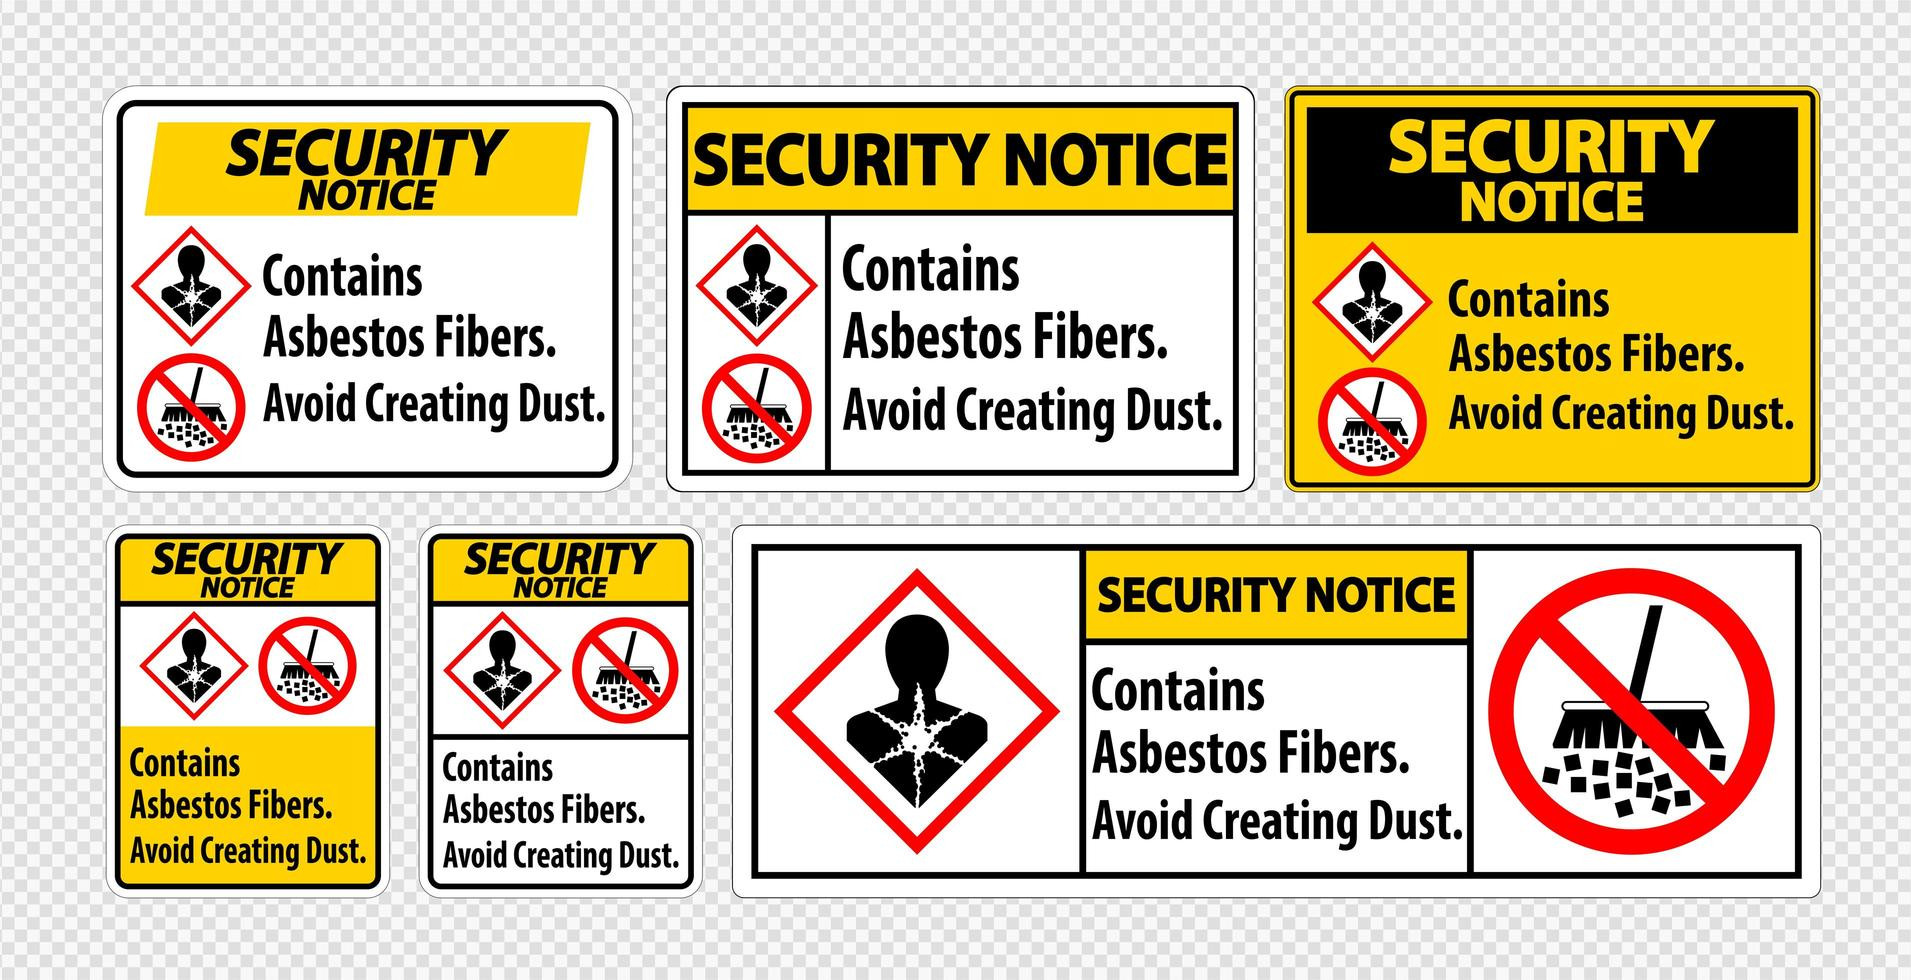 Safety Instructions to Avoid Asbestos vector